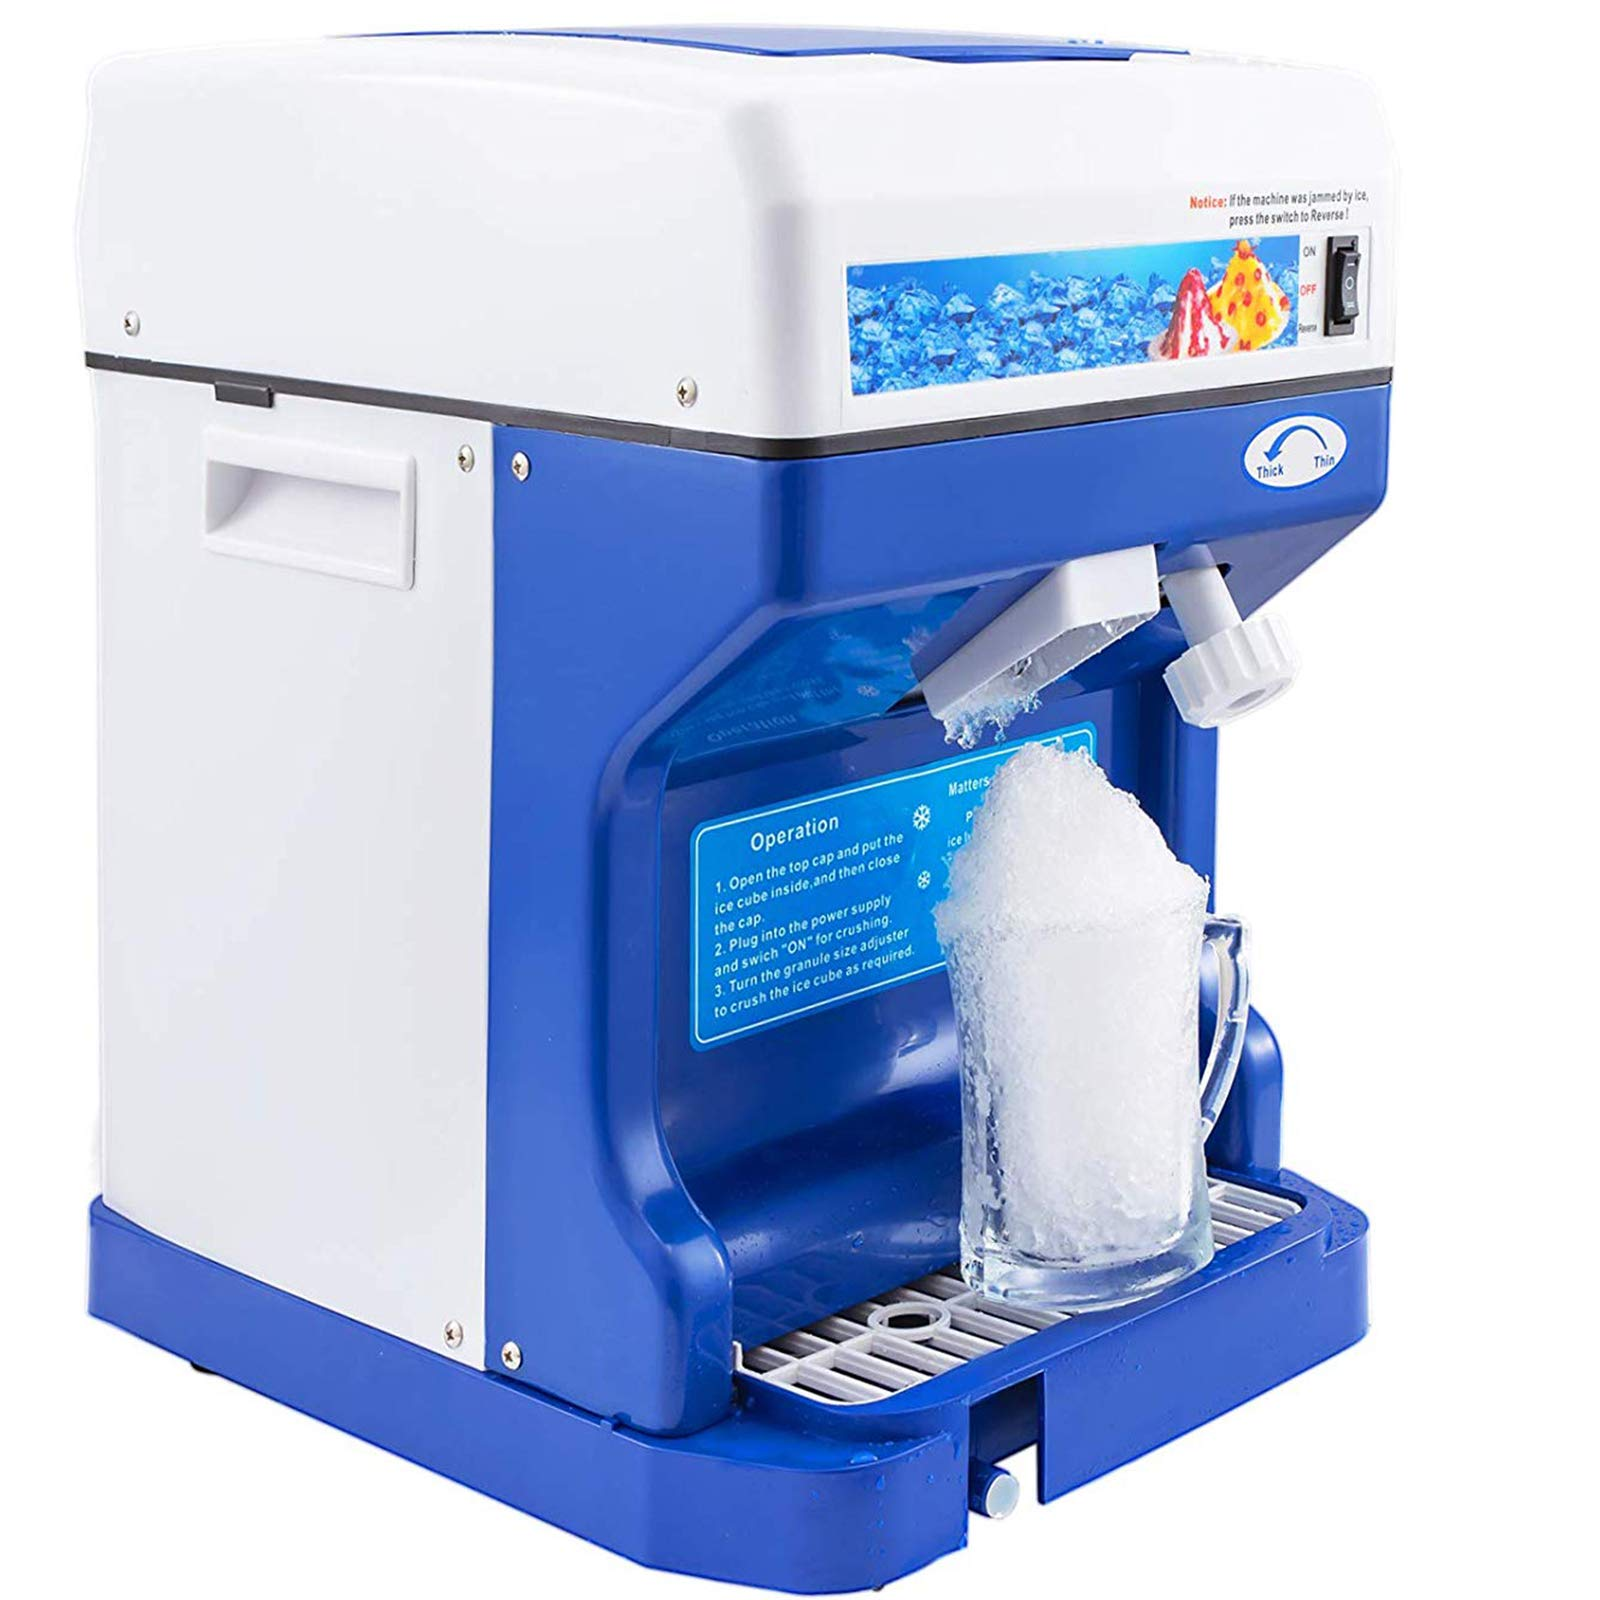 VEVOR Shaved Ice Crusher 250W Snow Cone Maker 110V 60hz Tabletop Ice Shaving Machine 265lbs/hr for Home and Commerical Use by VEVOR